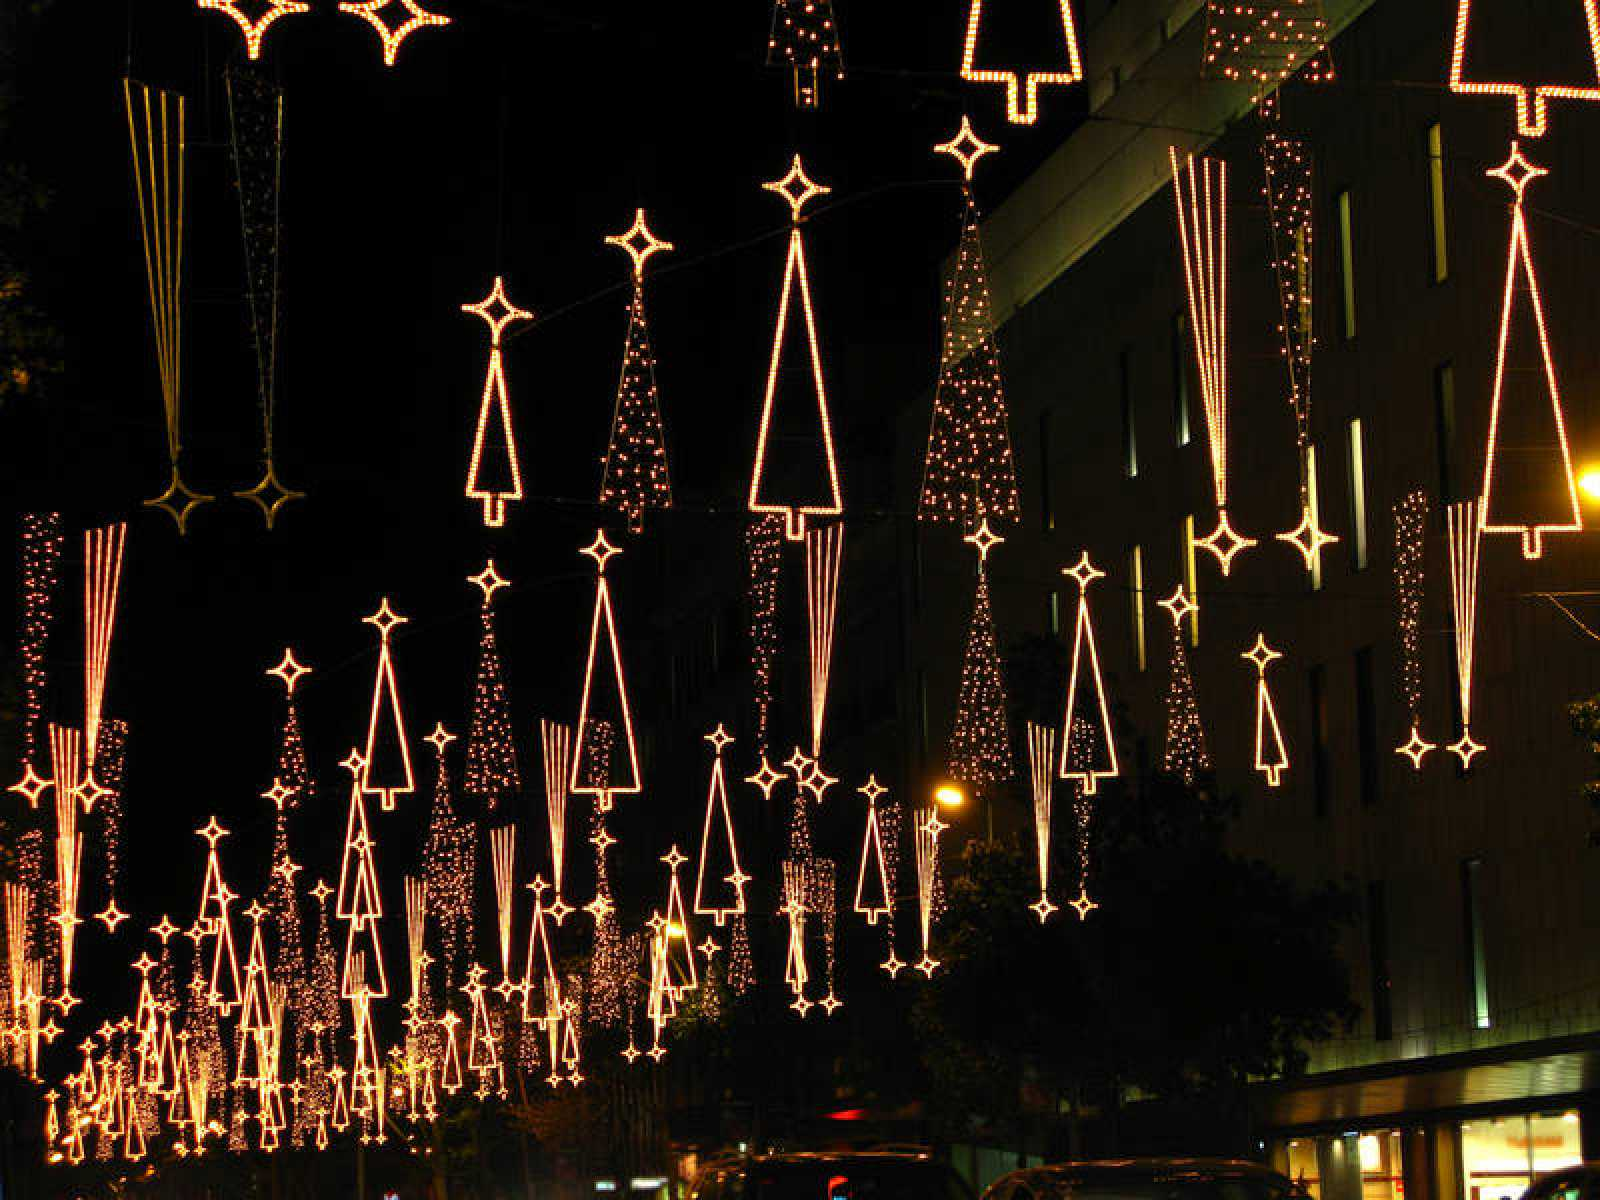 Christmas lights in Barcelona street